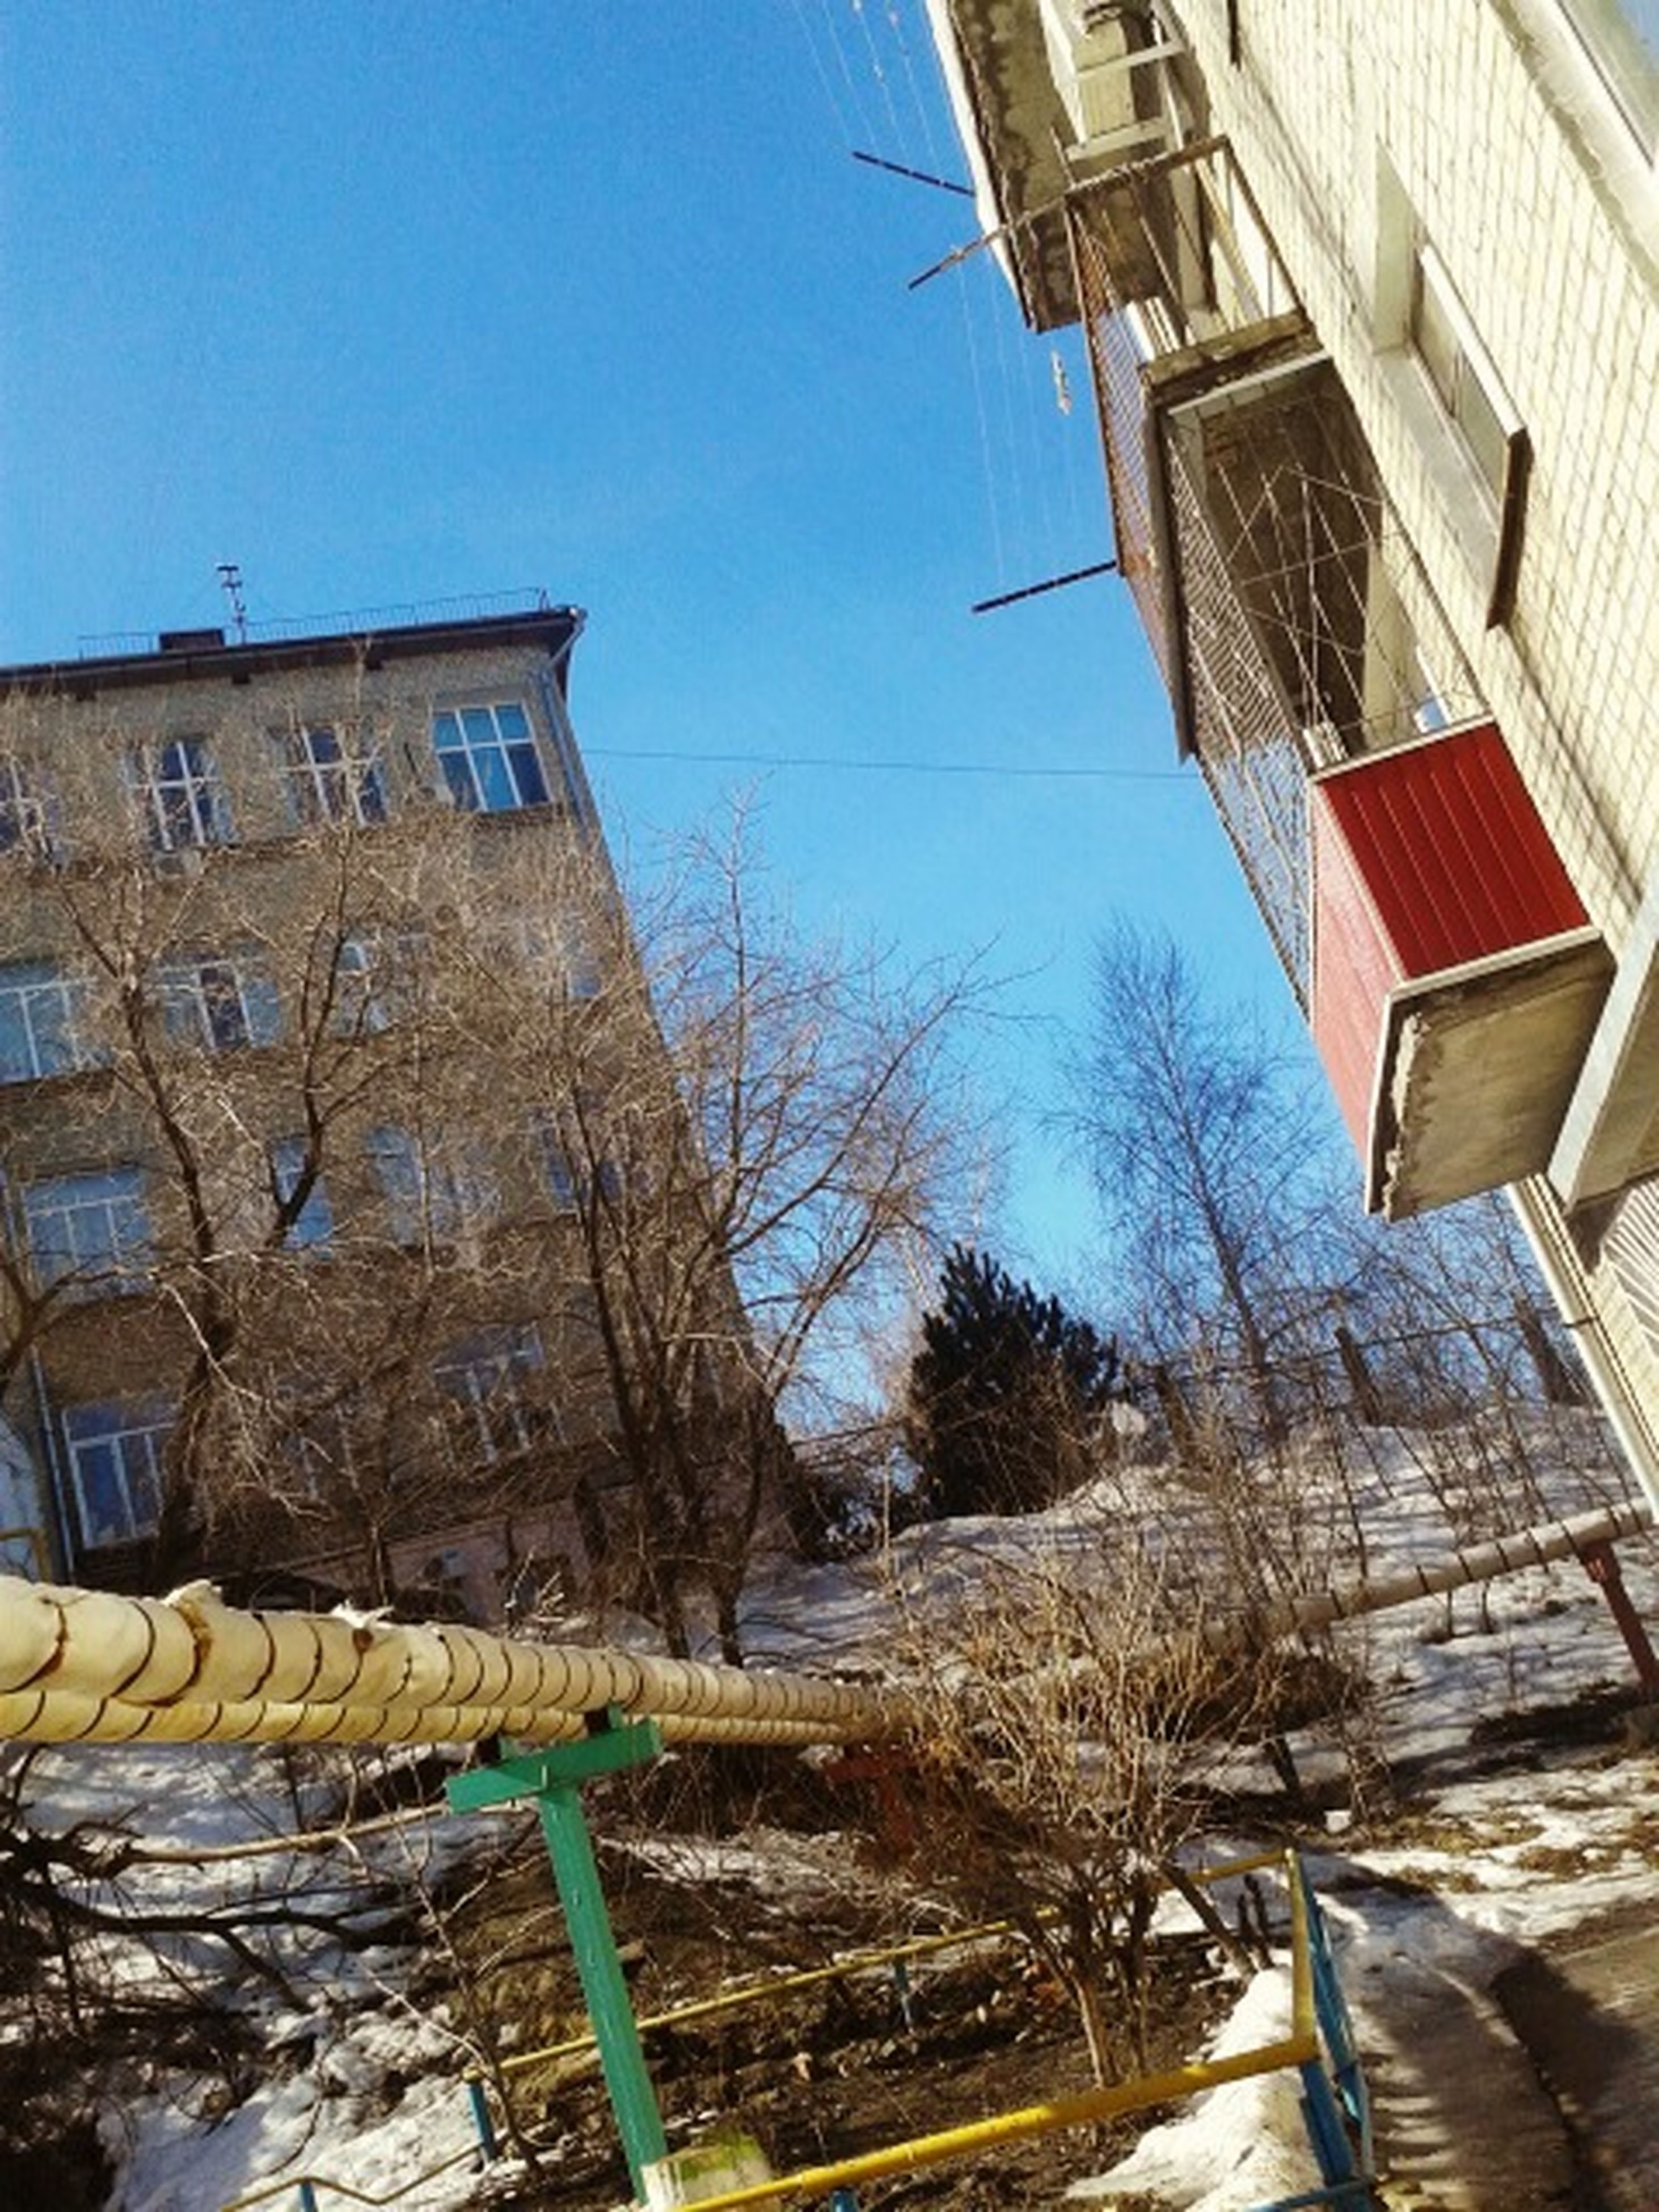 building exterior, architecture, built structure, clear sky, house, low angle view, residential structure, residential building, blue, building, old, abandoned, day, sunlight, tree, damaged, outdoors, no people, steps, sky